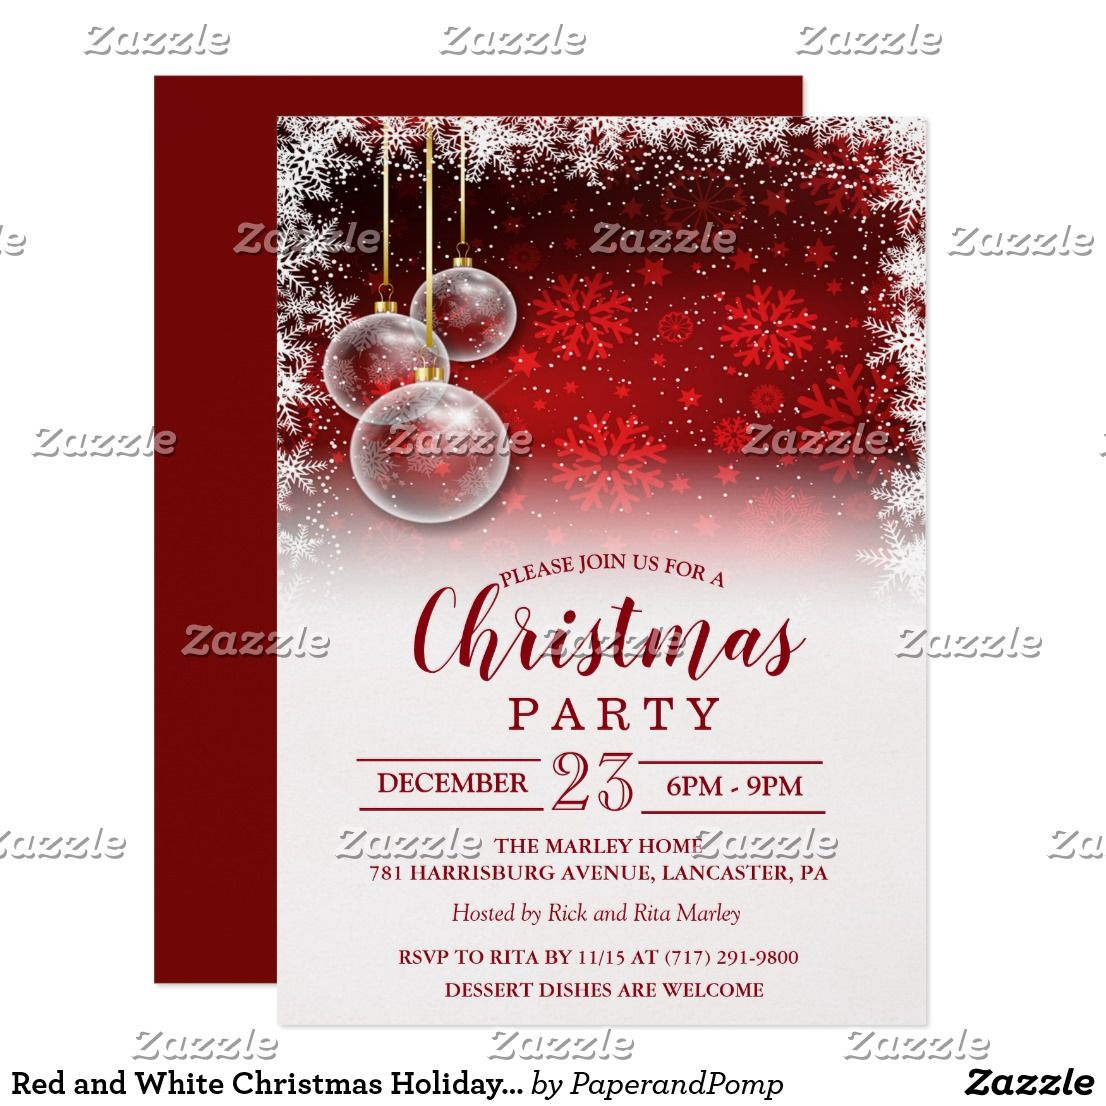 Red And White Christmas Holiday Invitation There S No Season Like The Holiday Party Season Invite Your G Holiday Invitations Christmas Invitations Invitations